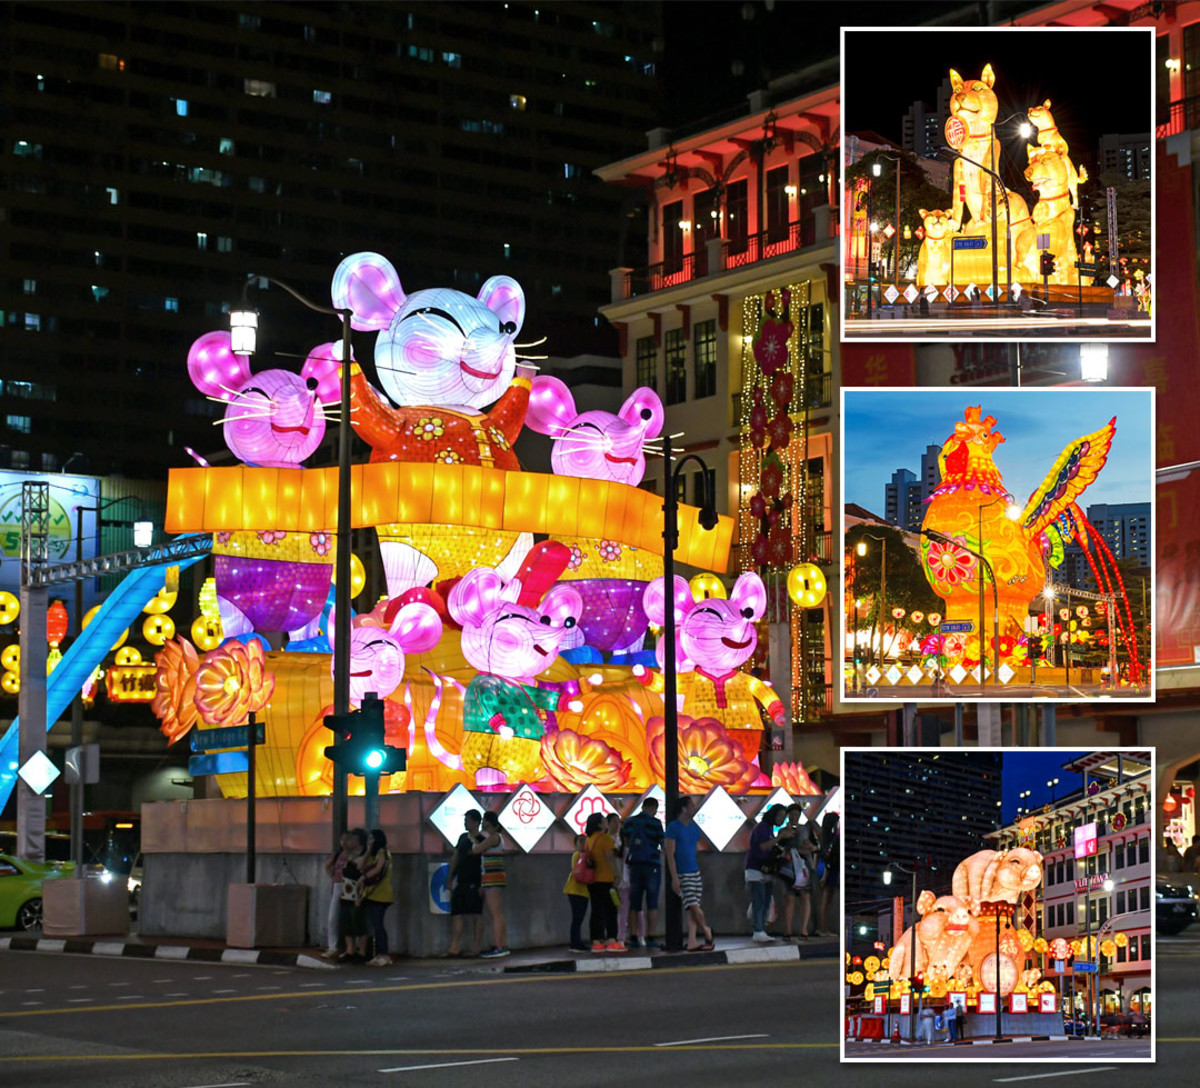 The incoming Chinese Zodiac animal for the New Year is always showcased at the Chinatown festive Light-Up. The main display in the above picture is that for Year of the Rat 2020.